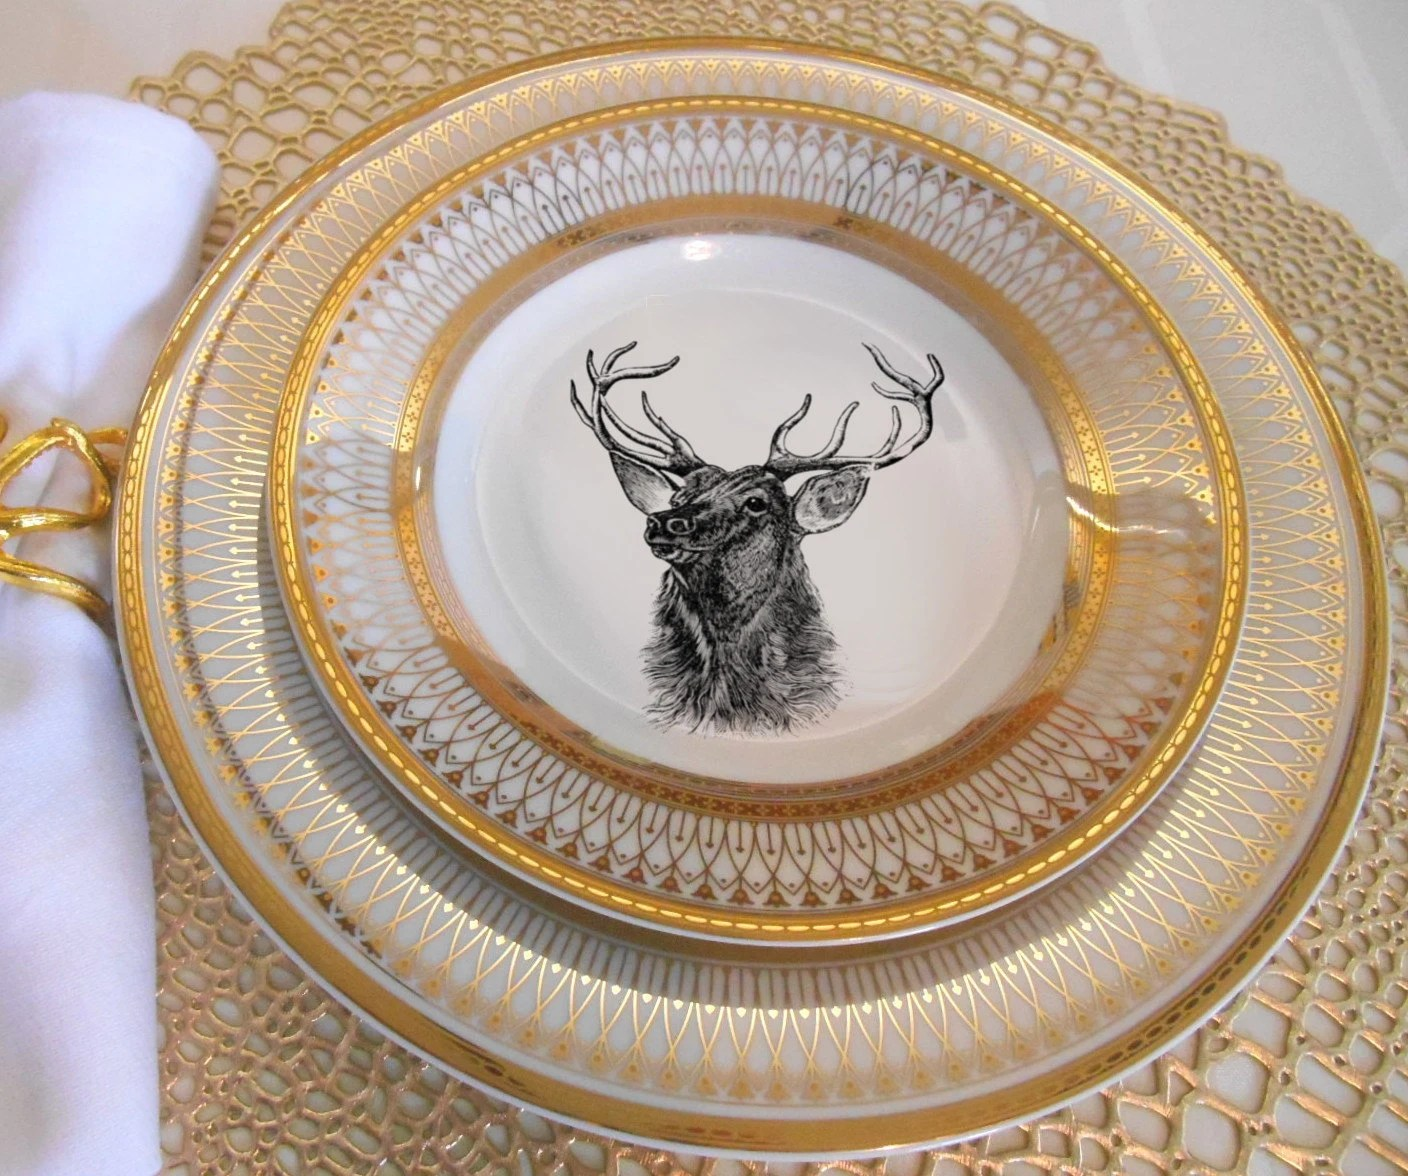 Personalized Dinnerware & Common Questions About Ceramic